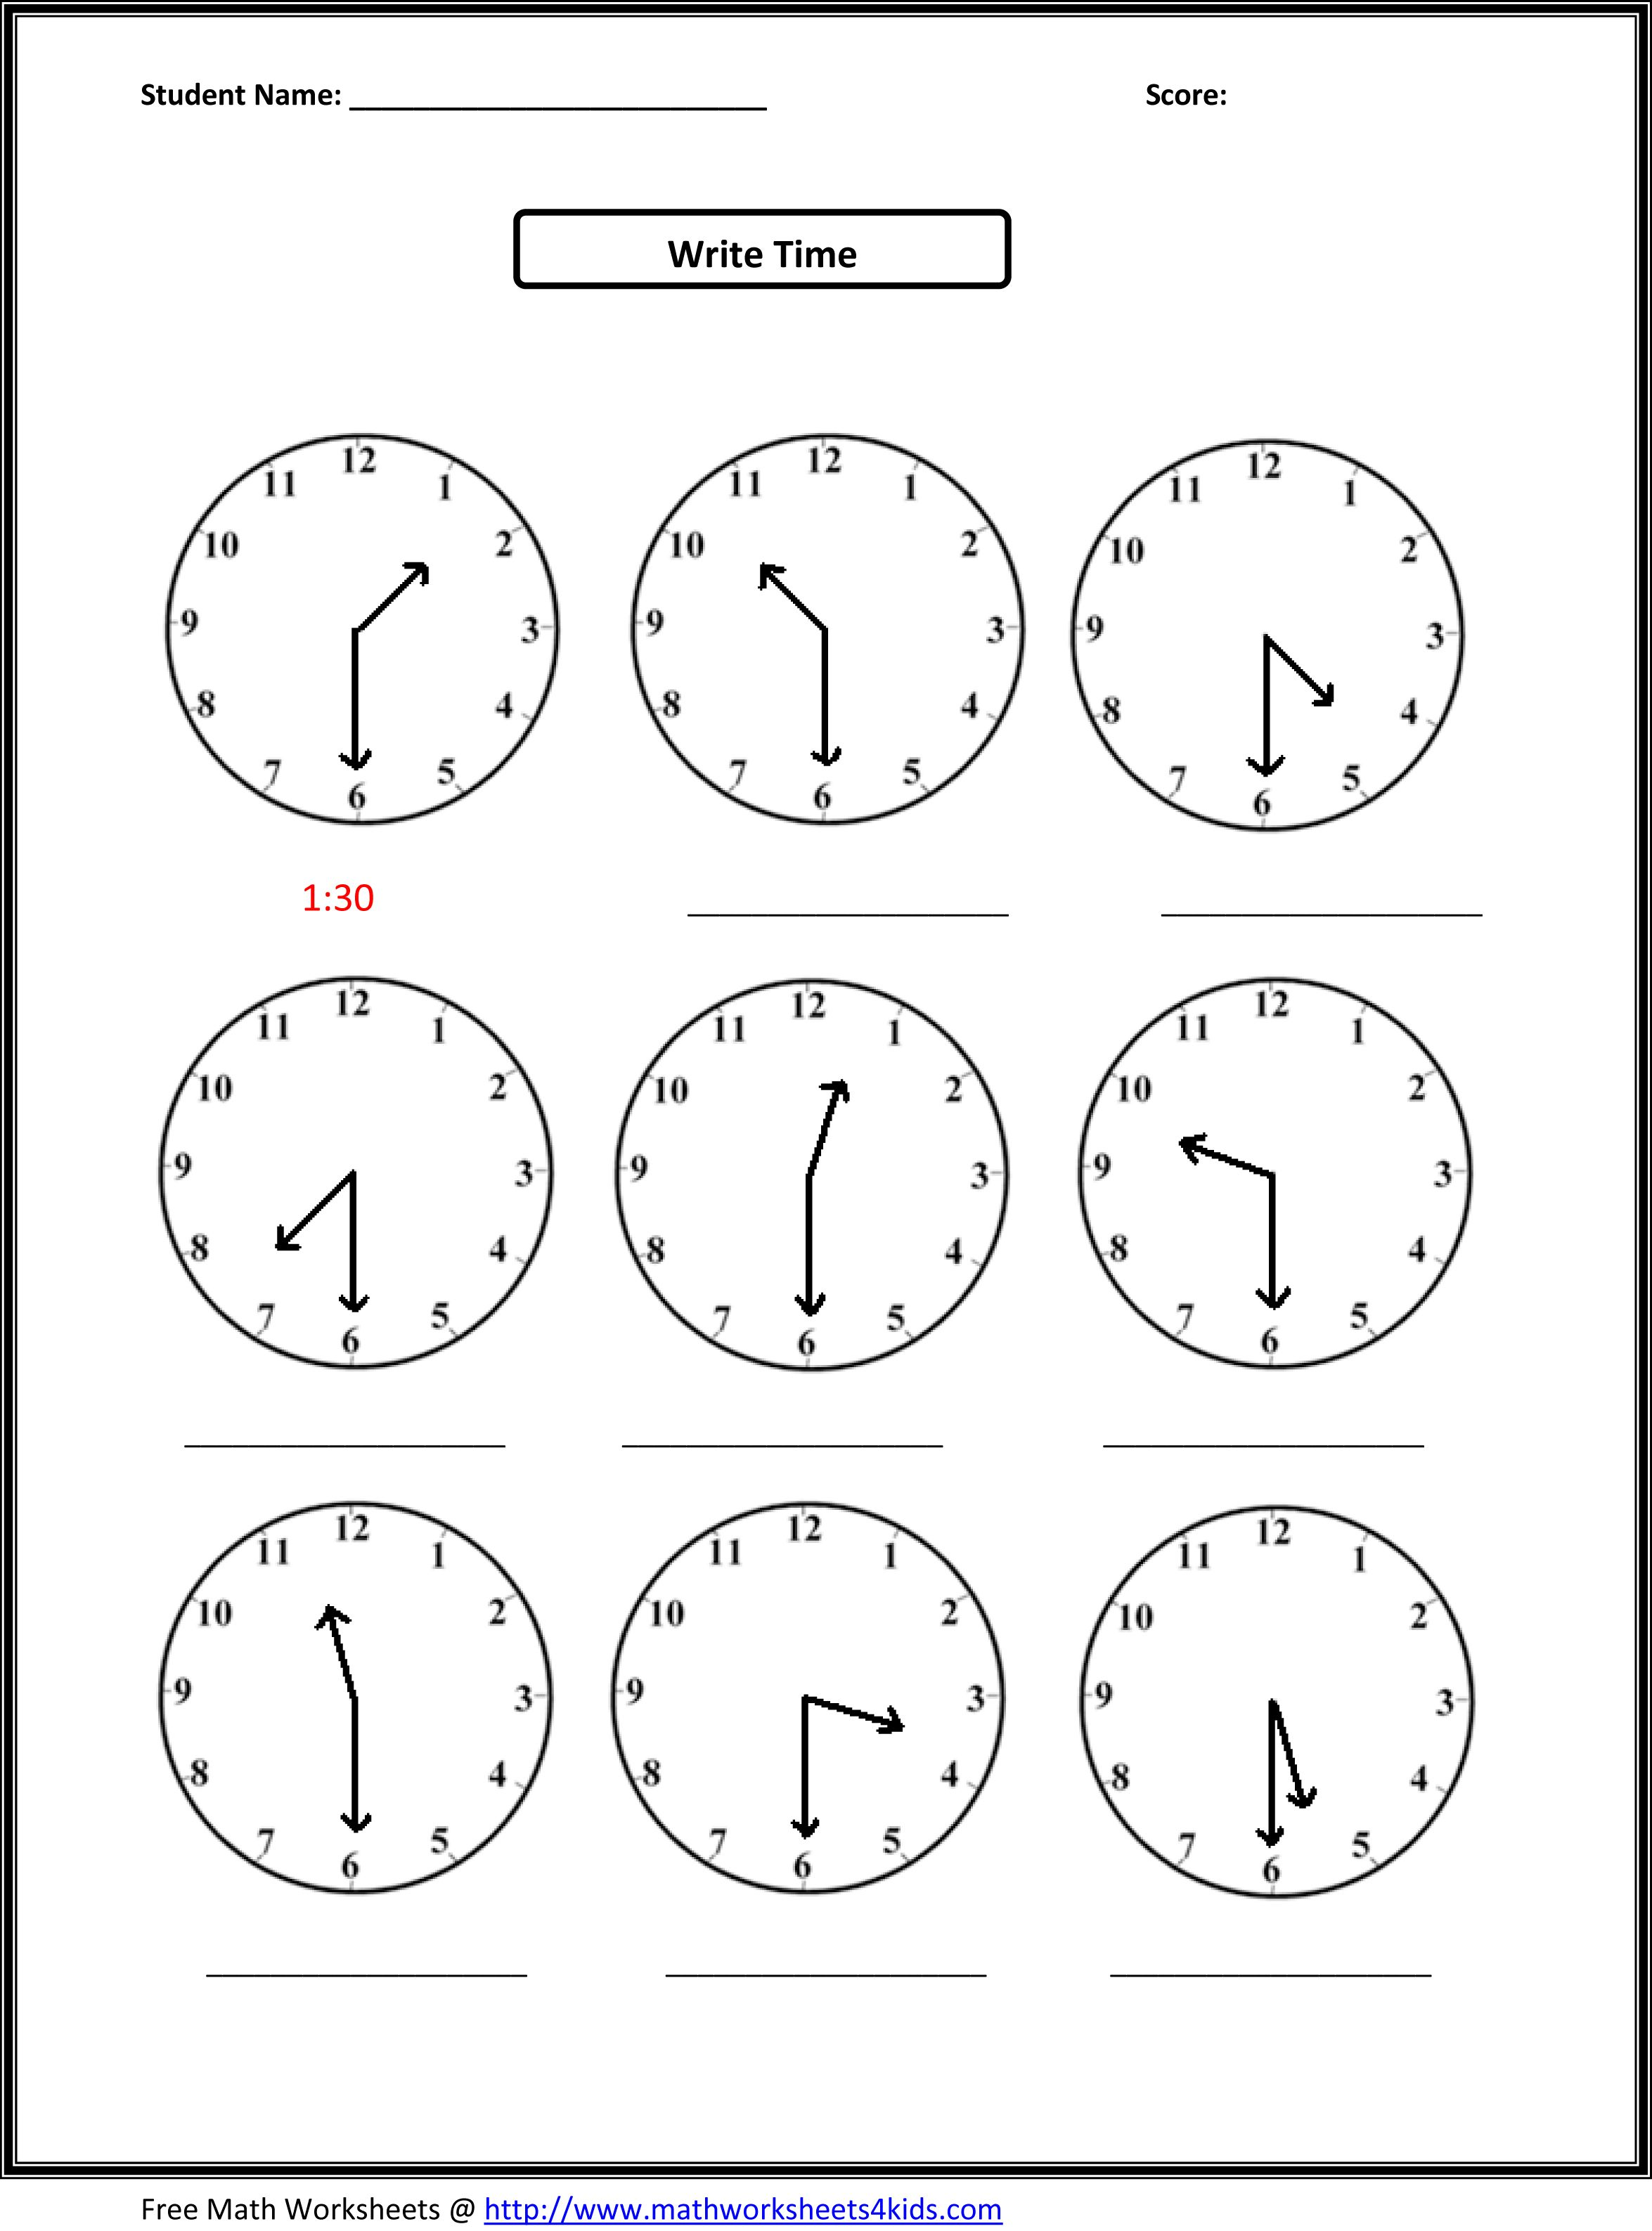 Proatmealus  Unique Worksheet On Time For Grade   Reocurent With Remarkable Free Printable Telling Time Worksheets Nd Grade  Reocurent With Amusing Free Tax Worksheet Also Subtraction Regrouping Worksheet In Addition Mind Map Worksheet And Fractions And Number Lines Worksheets As Well As Daily Oral Language Worksheets Th Grade Additionally Addition Of Fractions With Like Denominators Worksheets From Reocurentcom With Proatmealus  Remarkable Worksheet On Time For Grade   Reocurent With Amusing Free Printable Telling Time Worksheets Nd Grade  Reocurent And Unique Free Tax Worksheet Also Subtraction Regrouping Worksheet In Addition Mind Map Worksheet From Reocurentcom